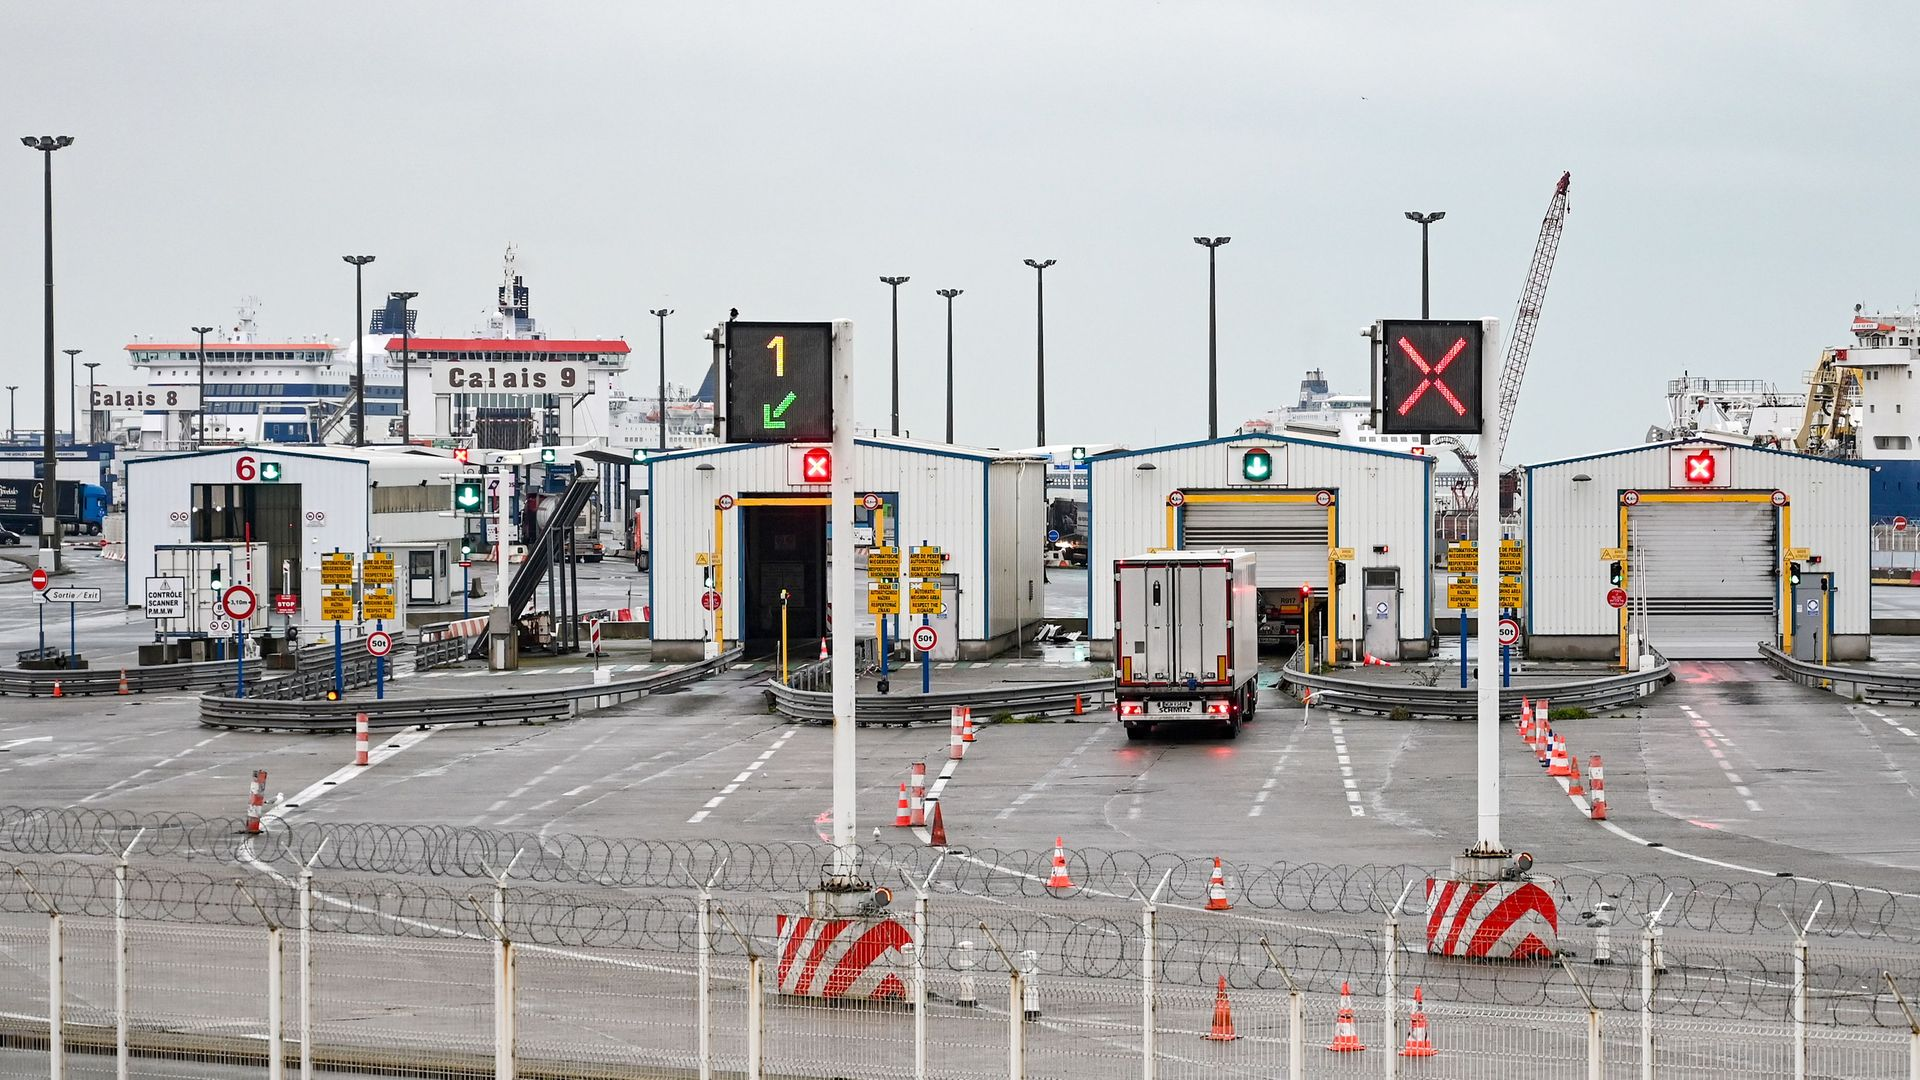 The checkpoint at the port of Calais - Credit: AFP via Getty Images